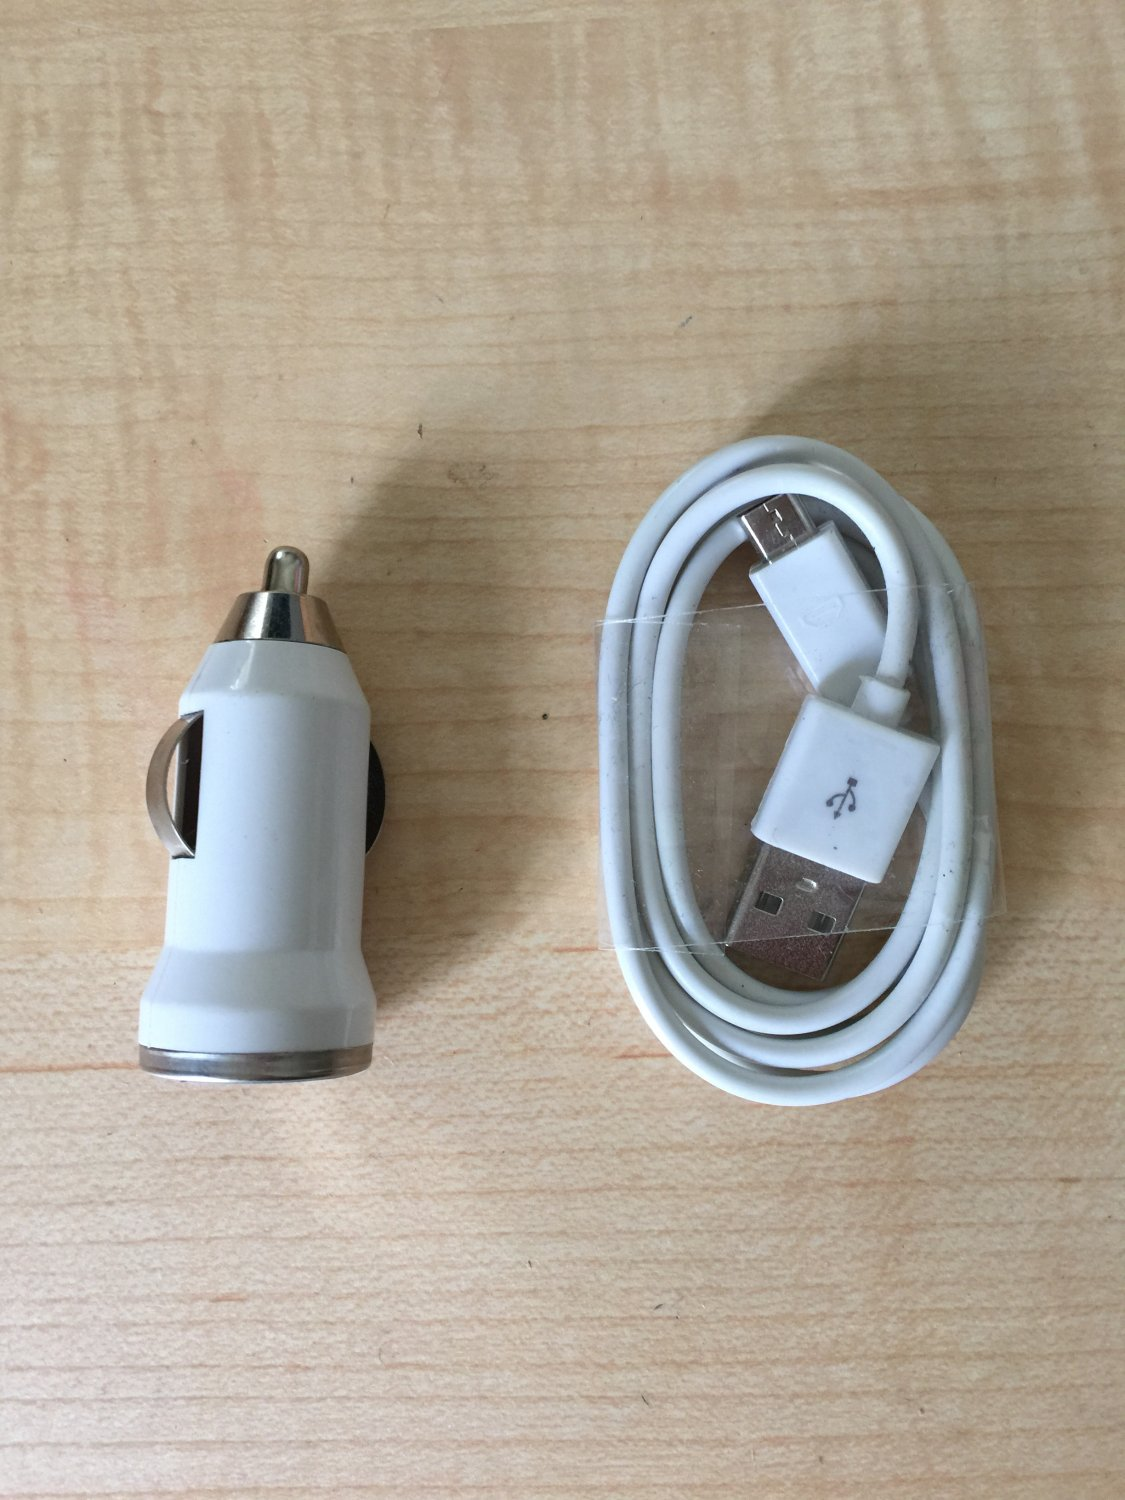 1 USB 6FT Sync Cable - 1 Car Charger for Android Cell Phone White Color